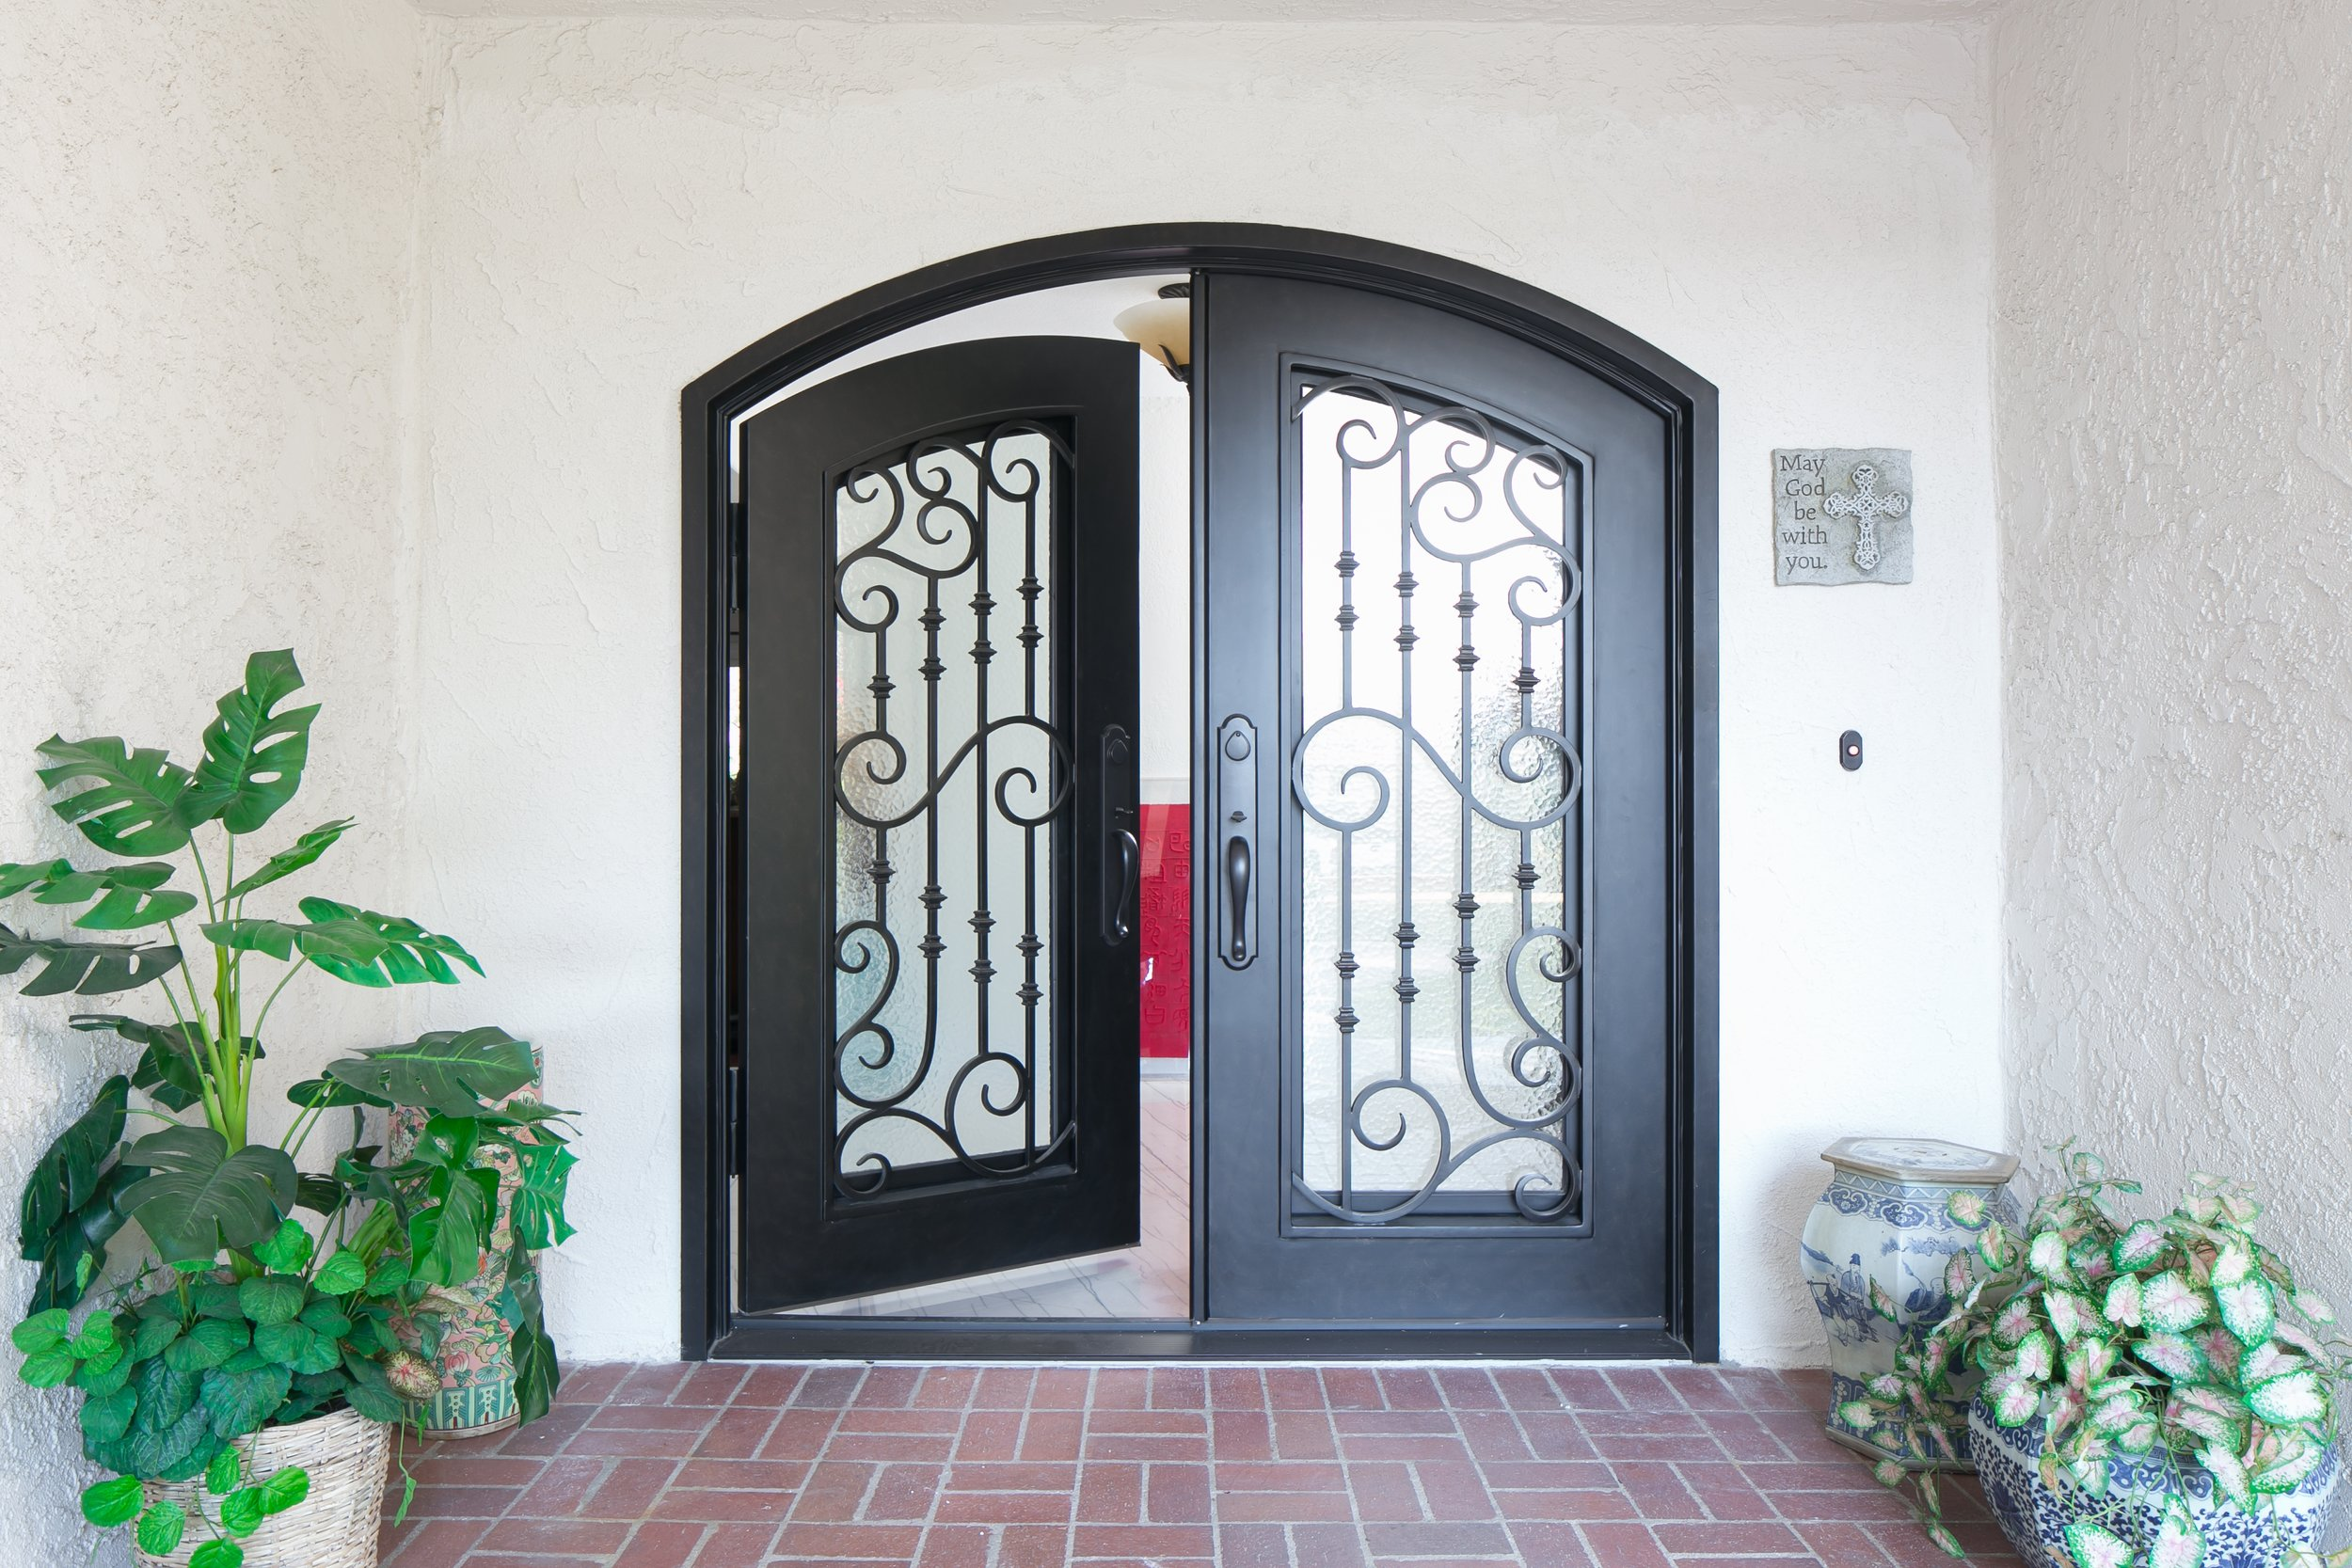 Arched steel double front door with wrought iron ornamental detail and interior glass doors for a polished entryway and front elevation